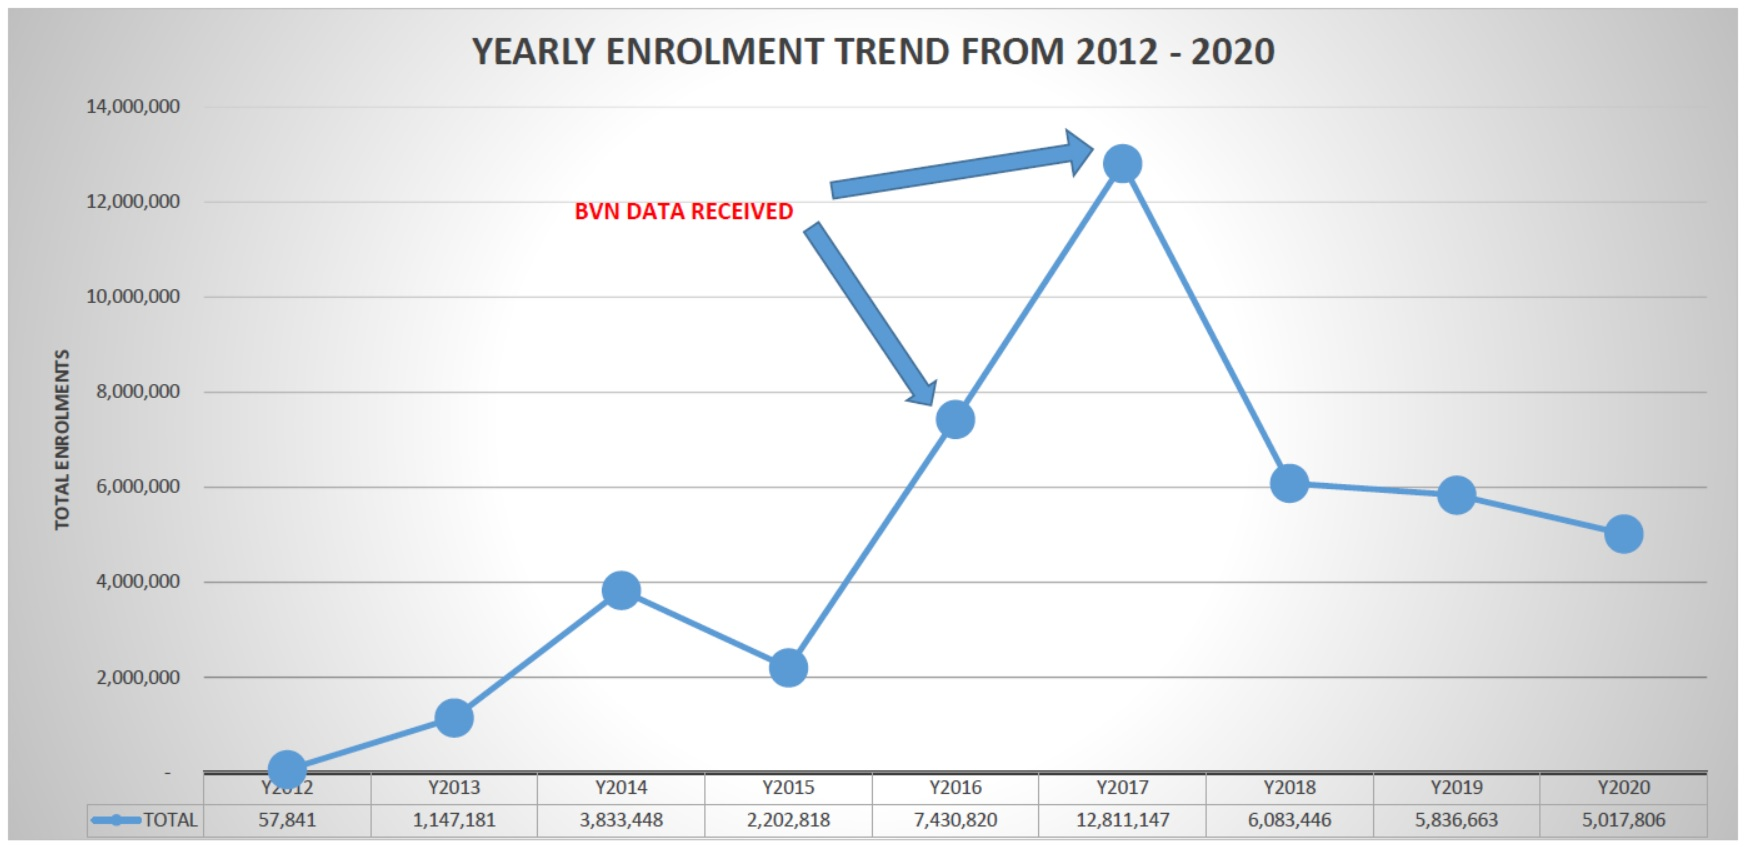 Yearly Enrolment Trend from 2012 to 2020